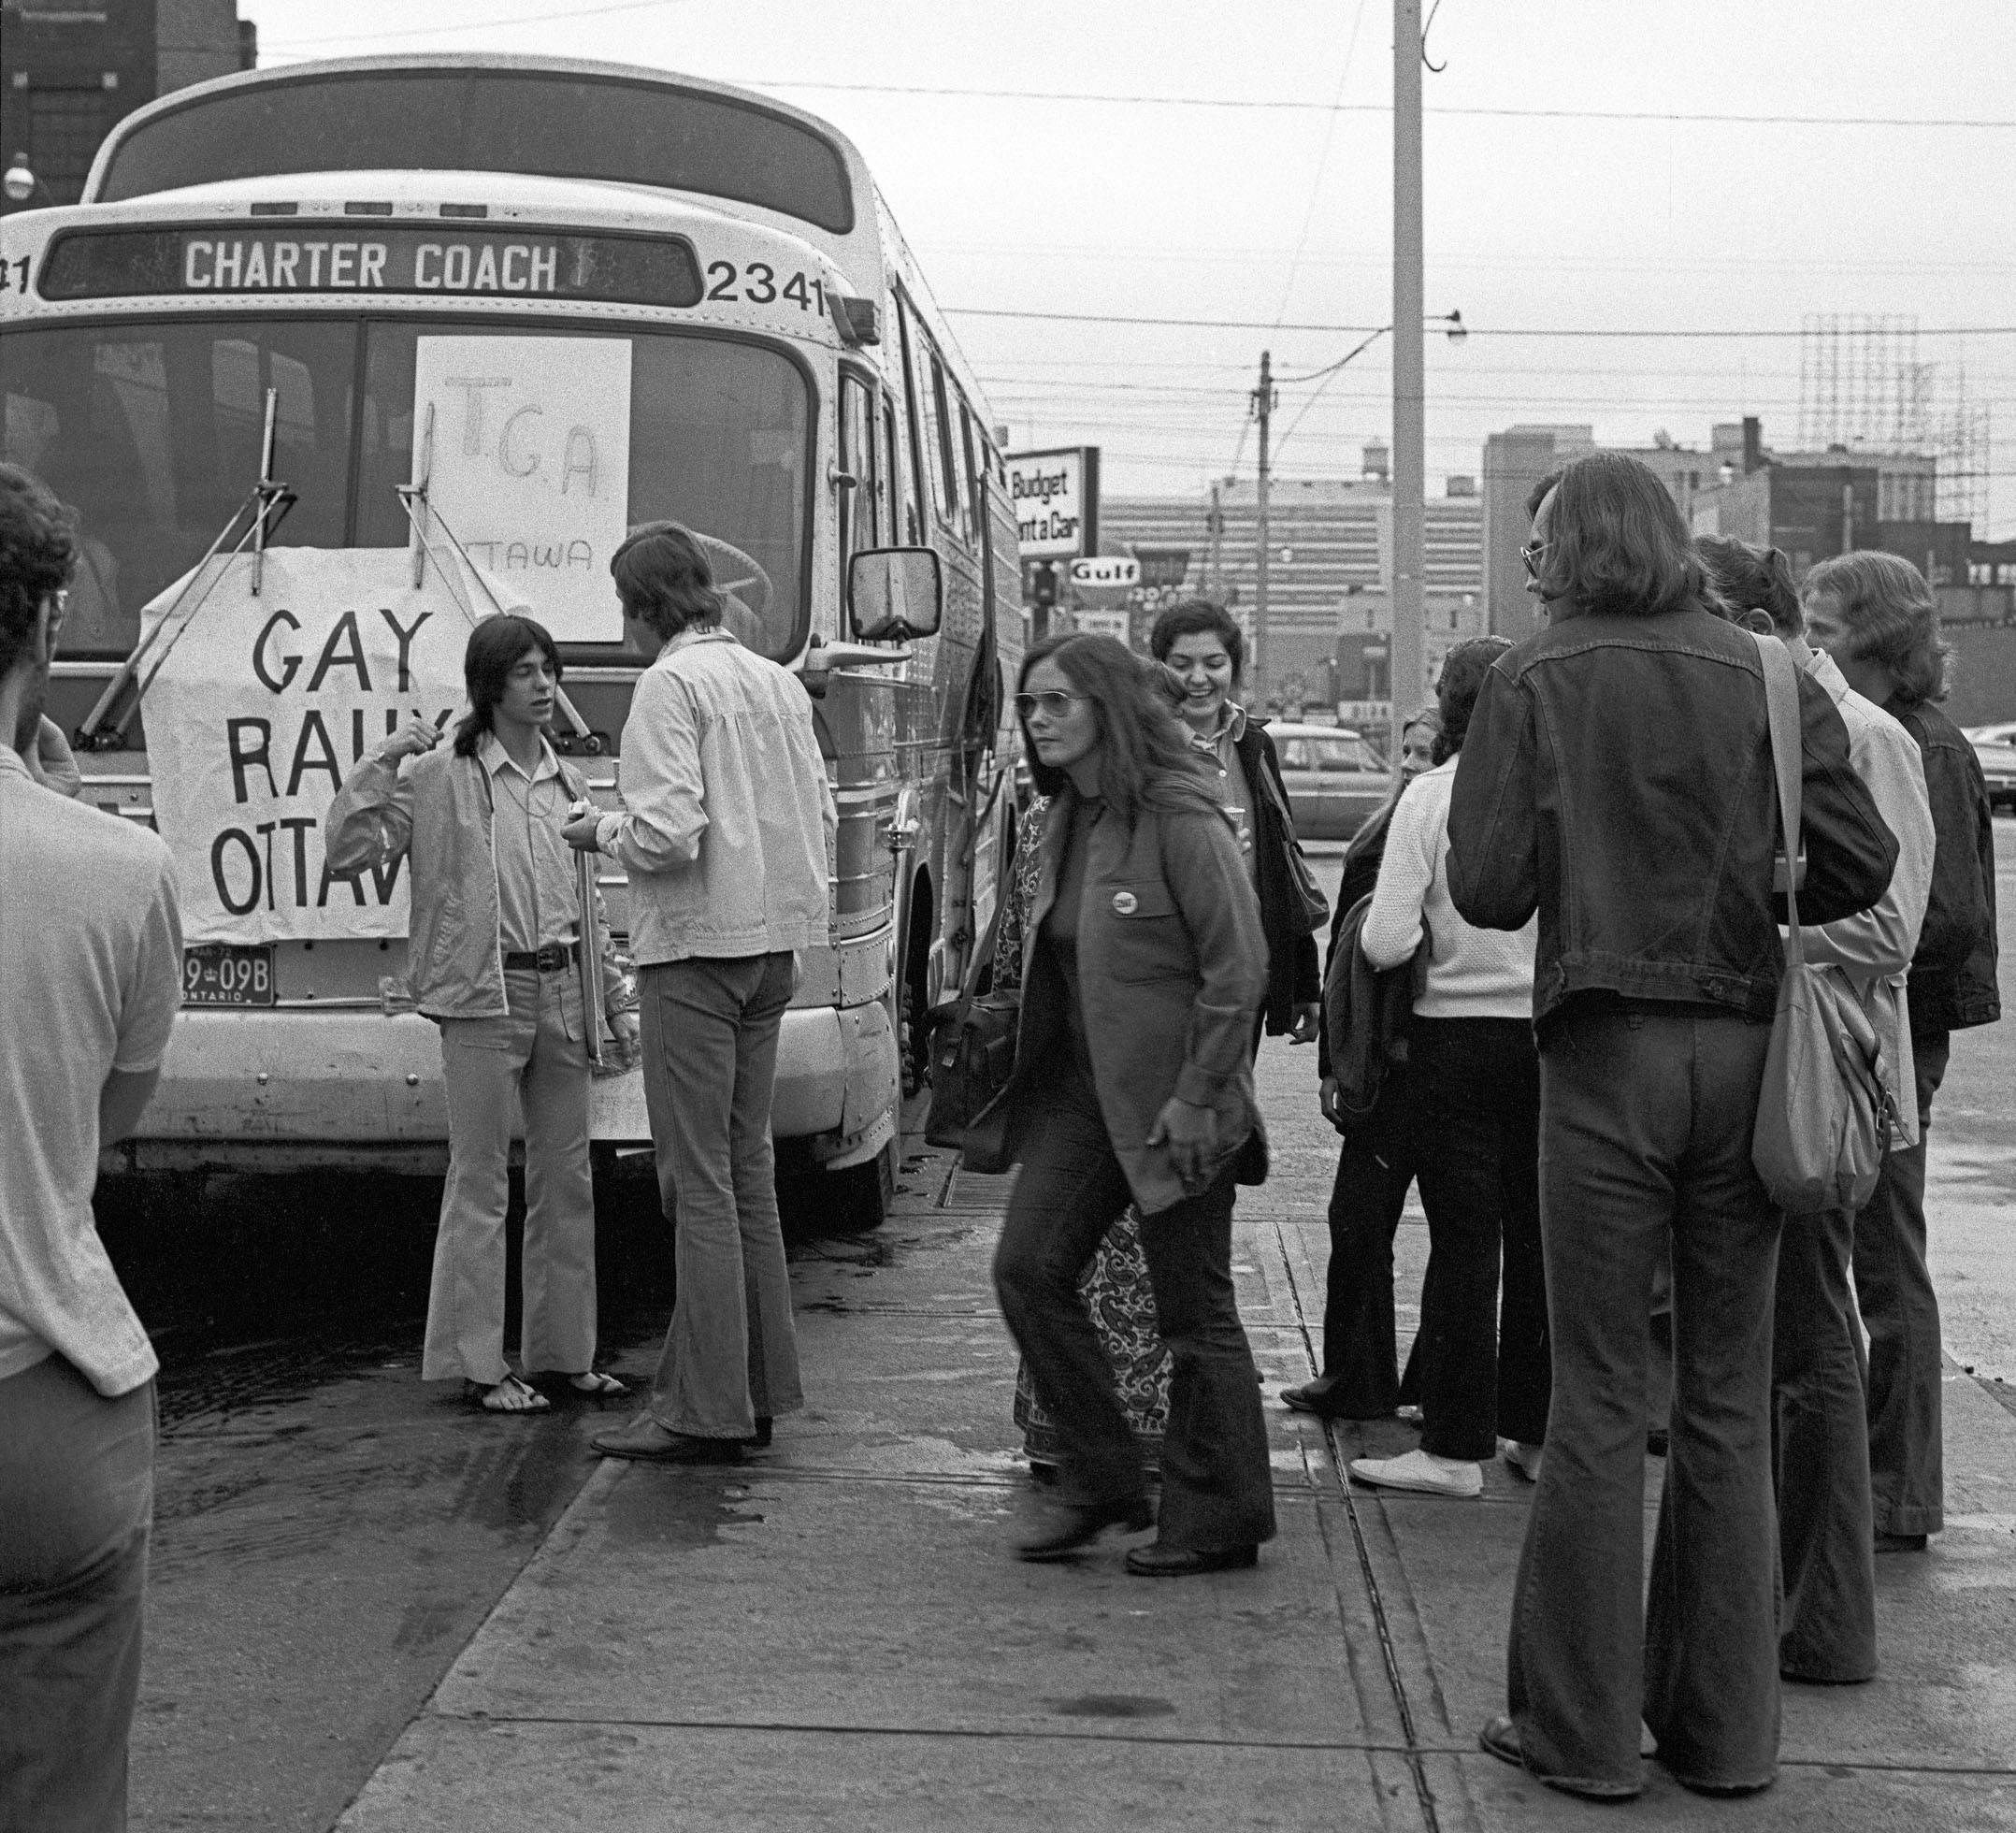 Ottawa Demo August 28th, 1971 - 1 Getting On the Bus in Toronto